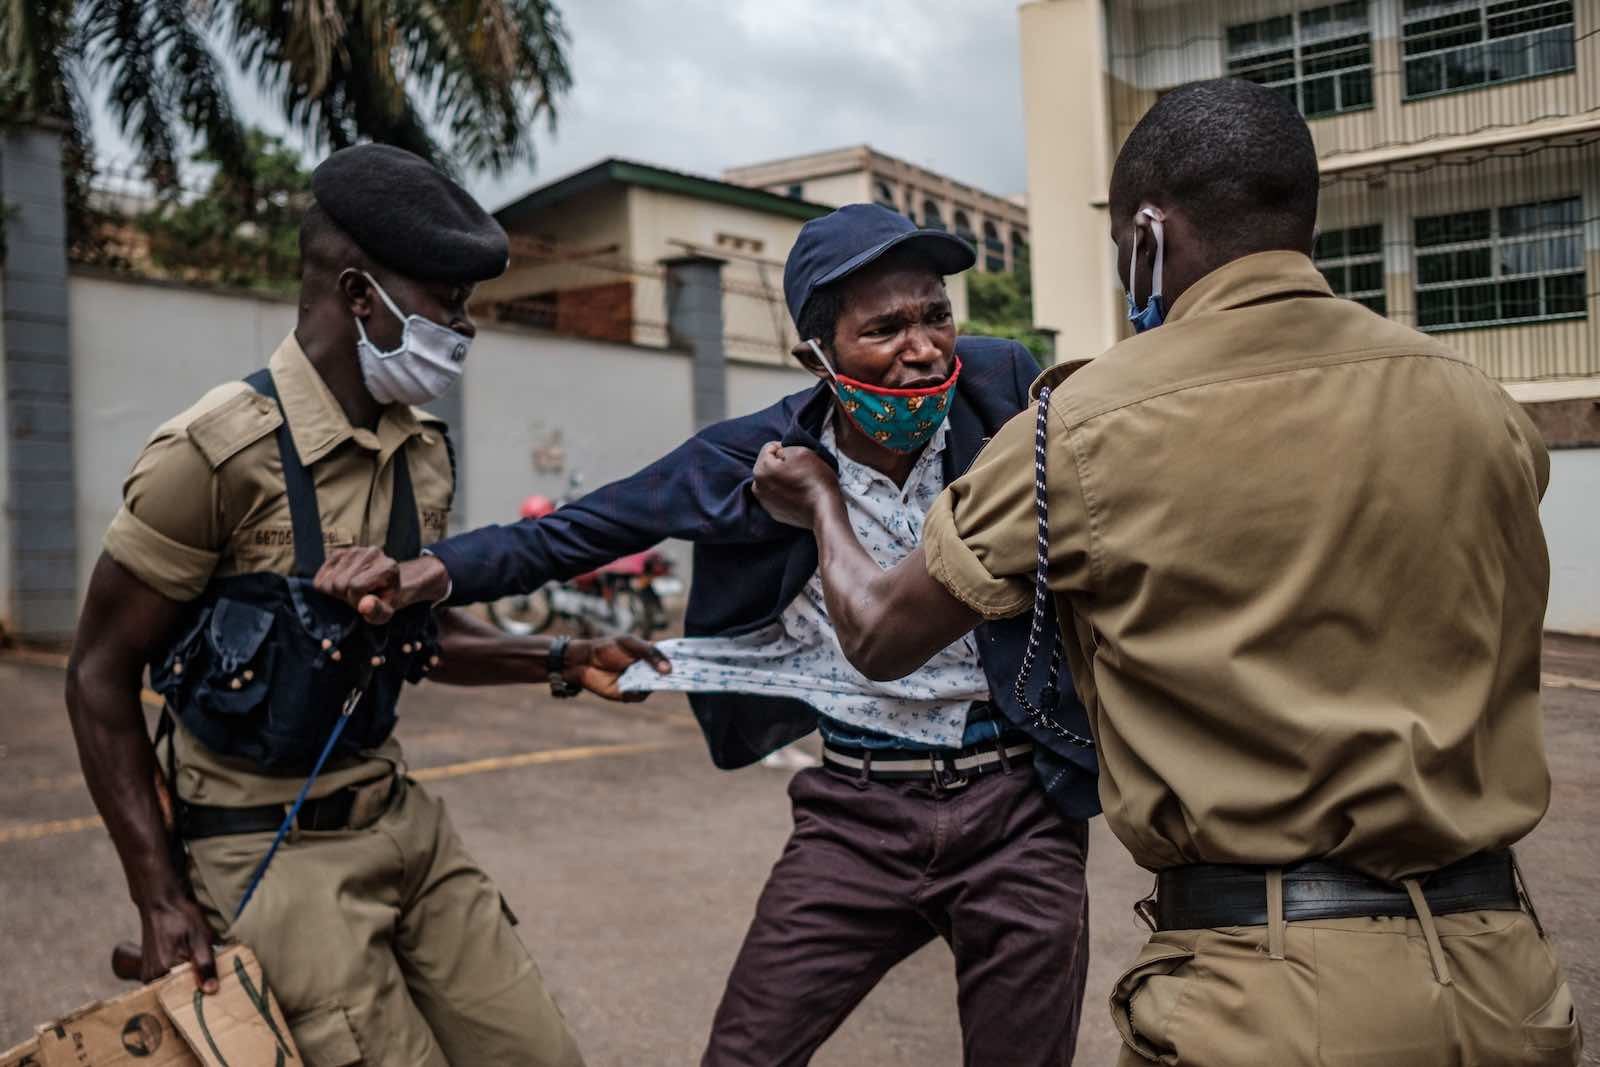 A demonstrator is arrested by police at a protest for more government food distributions during the Covid-19 crisis, 18 May in Kampala, Uganda (Sumy Sadurni/AFP via Getty Images)